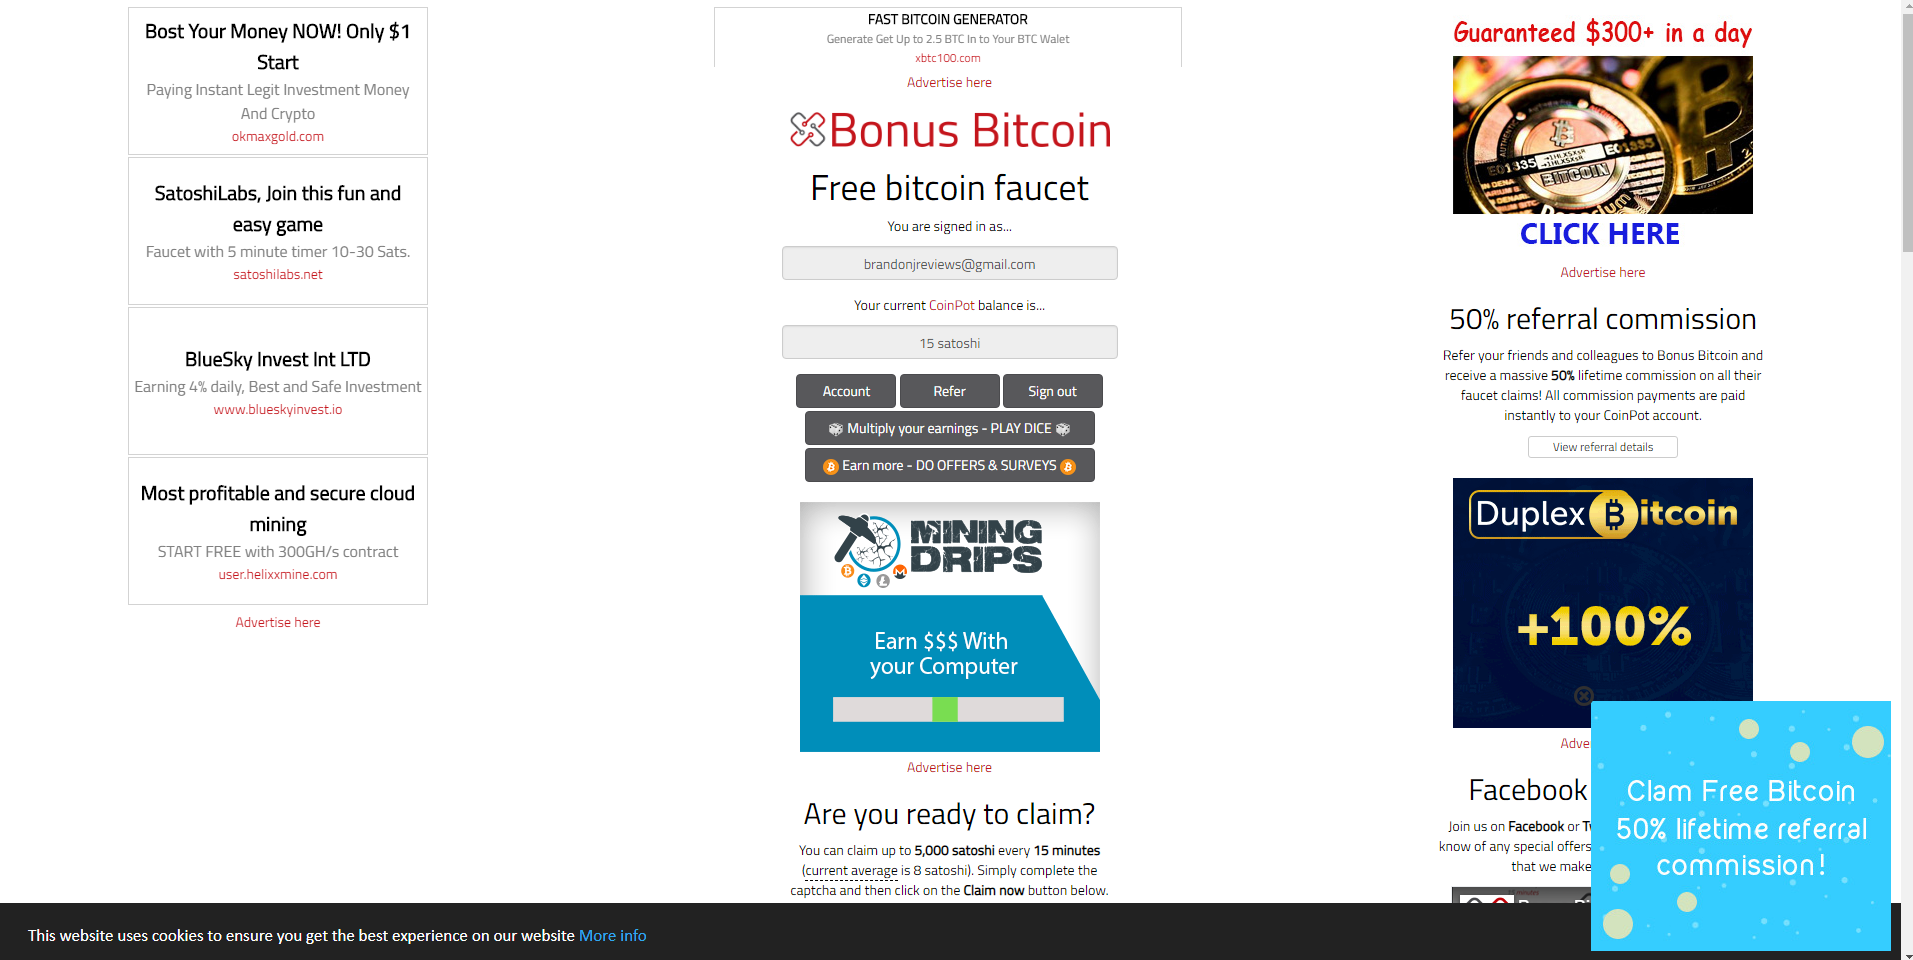 bonus bitcoin review ads